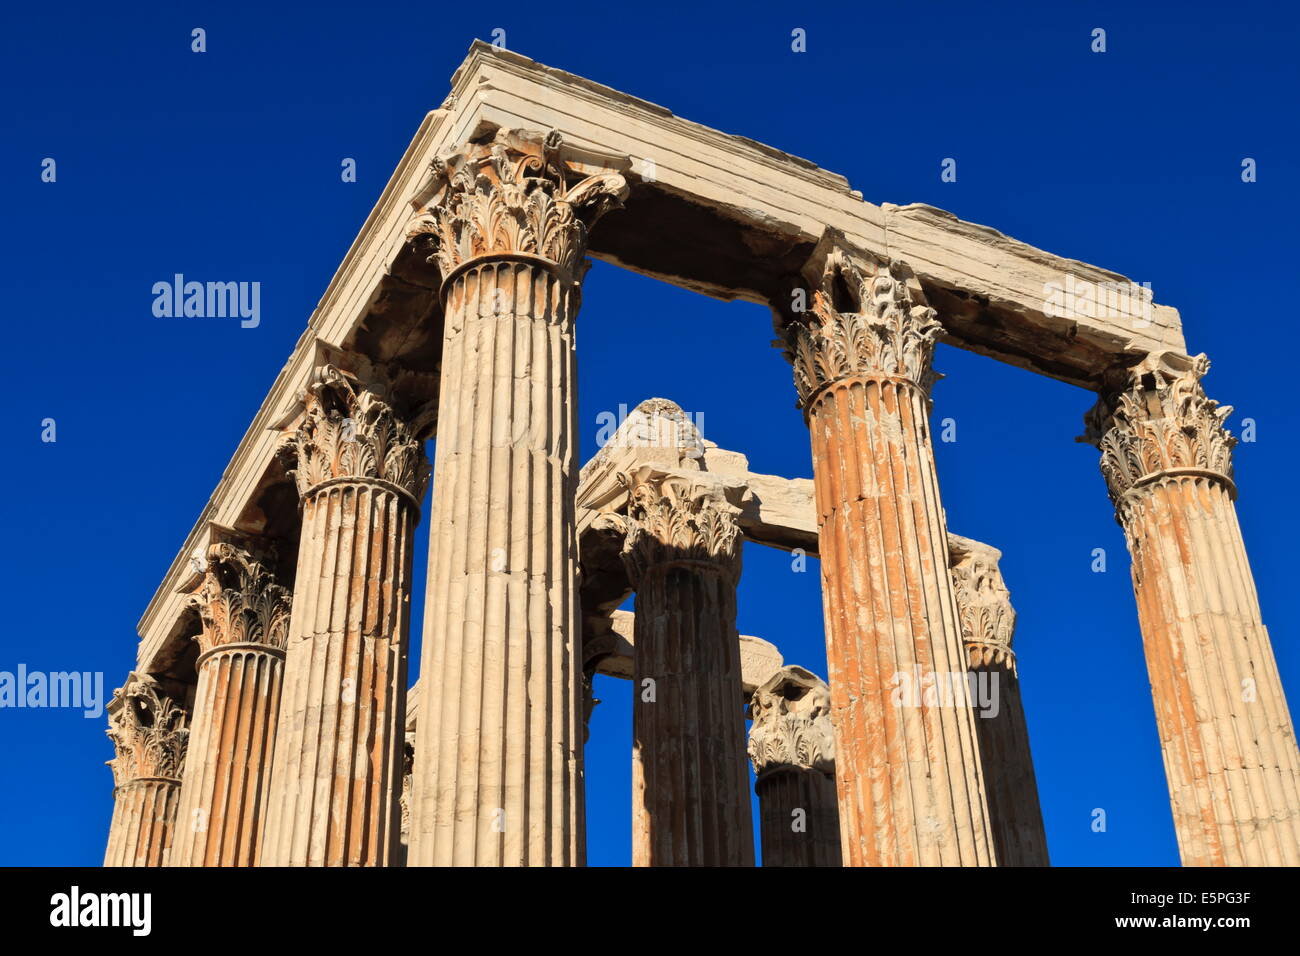 Standing Corinthian columns, early morning, Temple of Olympian Zeus, Athens, Greece, Europe - Stock Image